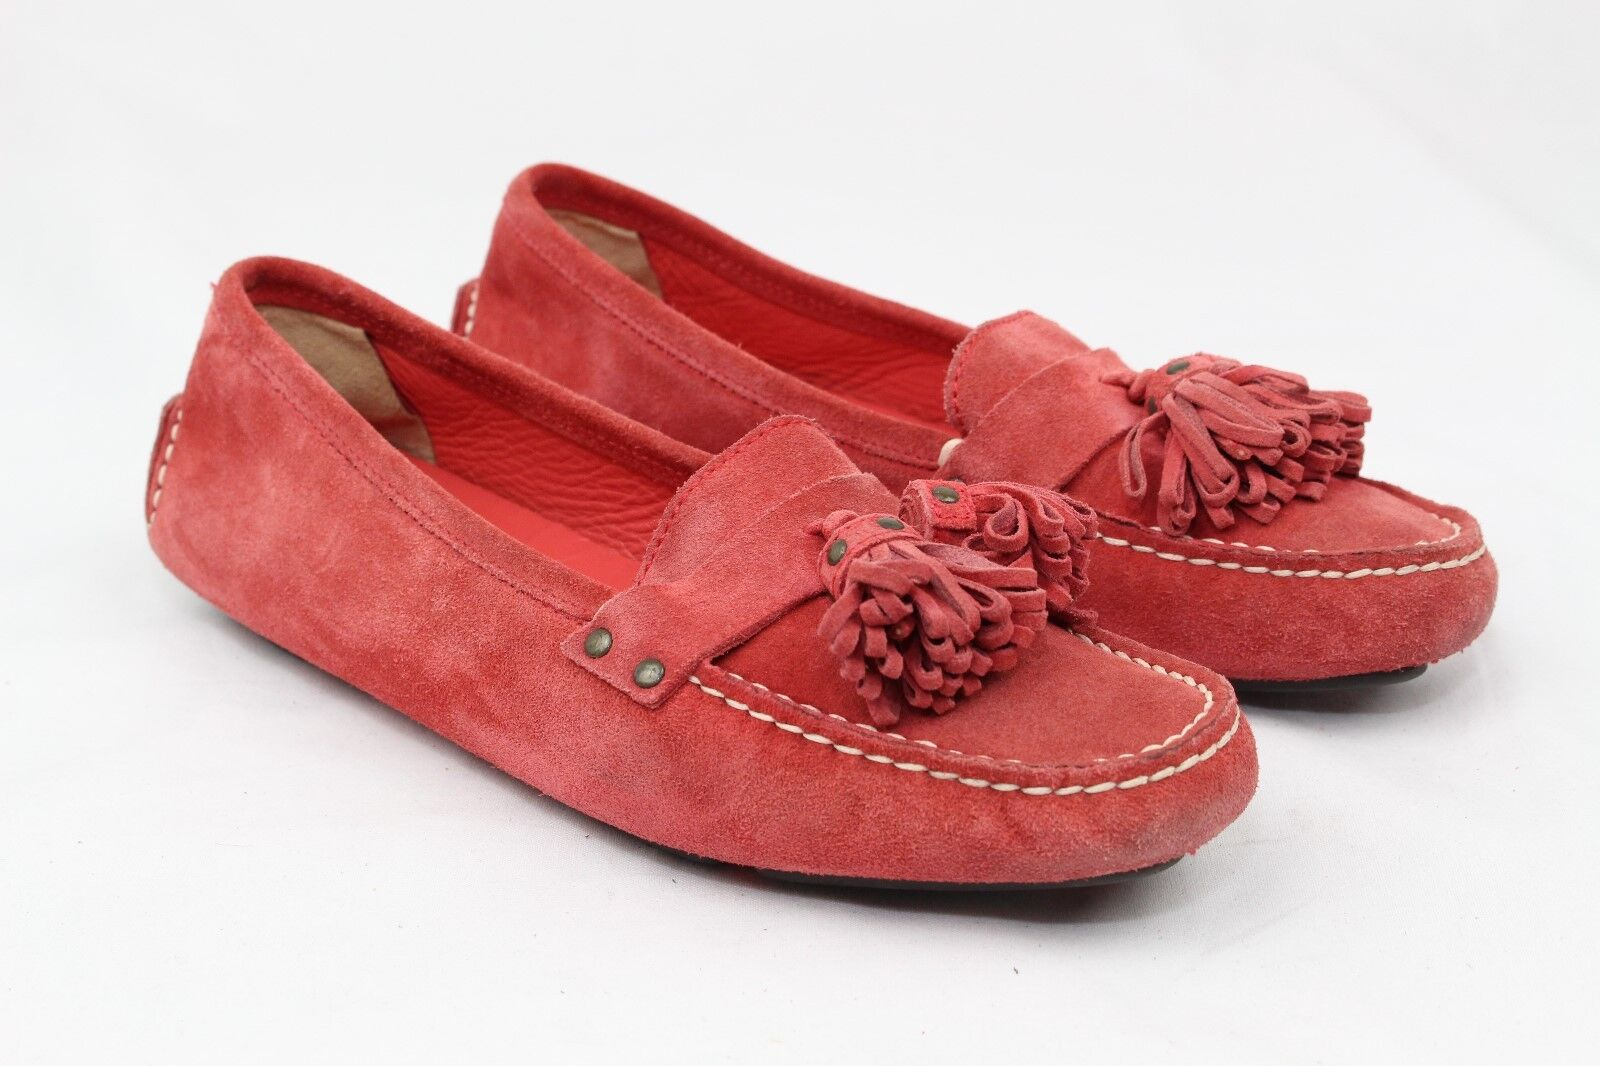 J. Crew Wouomo  rosso Suede Tassels Slip-On Flats Moc Toe Loafers,Dimensione 6,